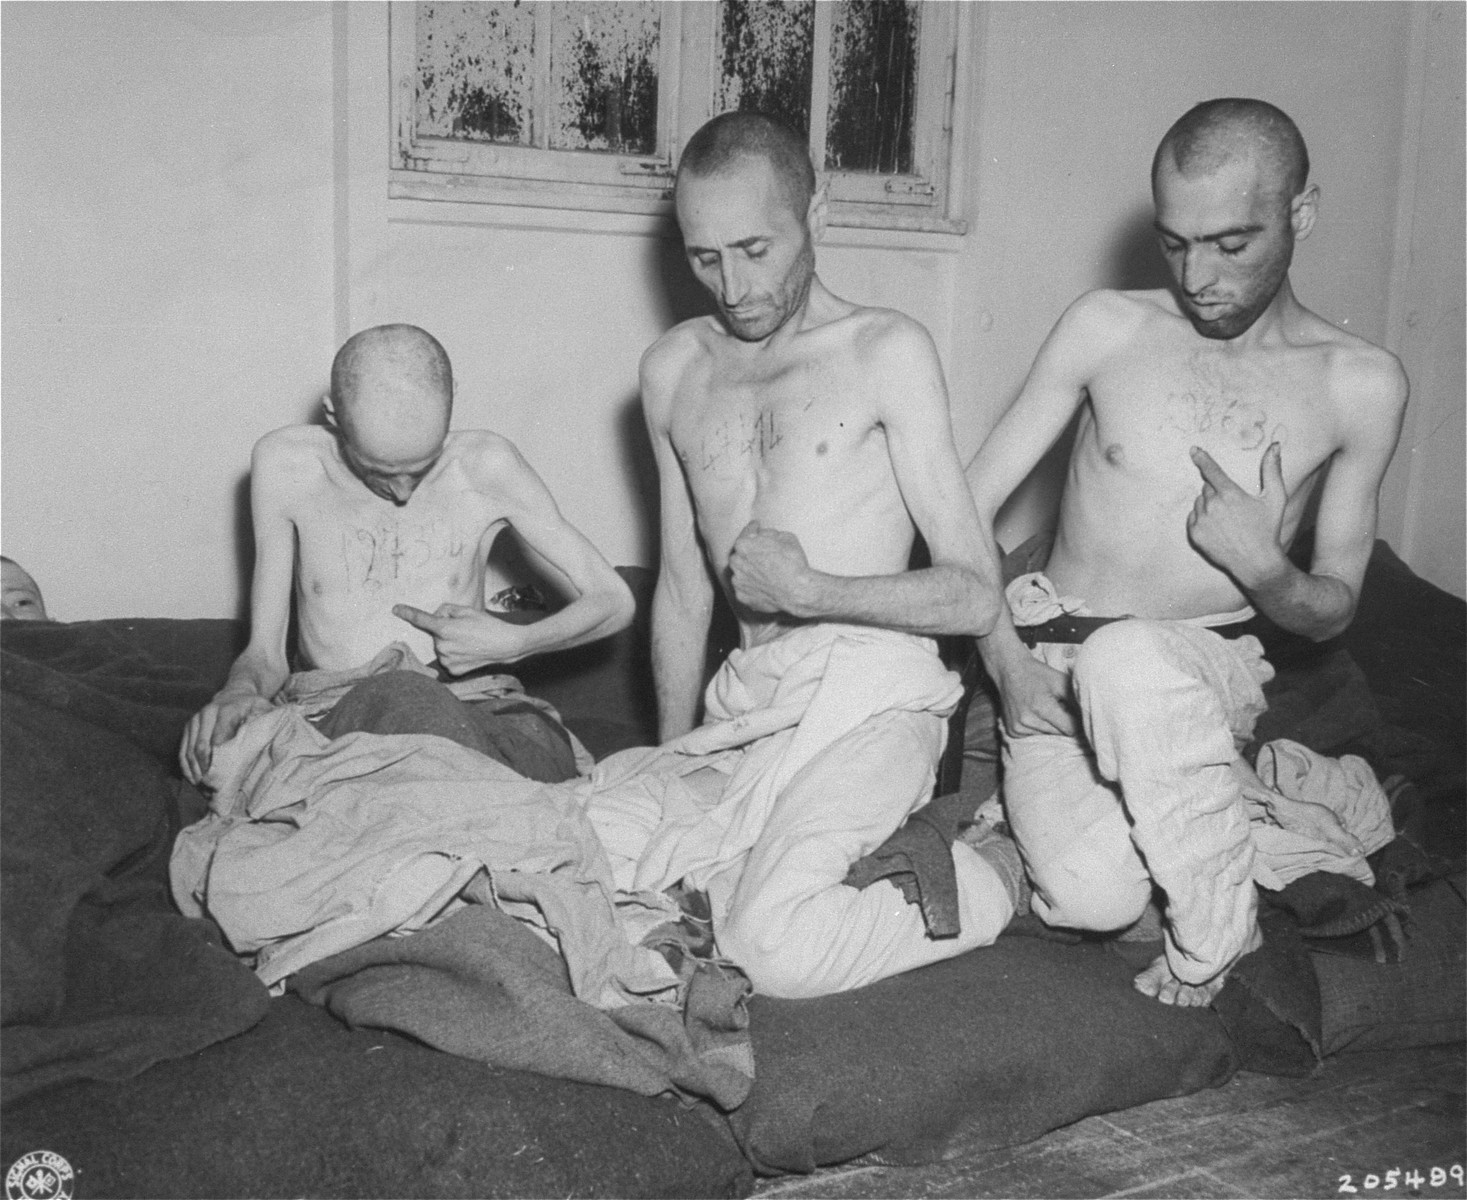 Three survivors of the death train in Dachau point to serial numbers they scratched into their skin for fear that they would remain unidentified if they died.